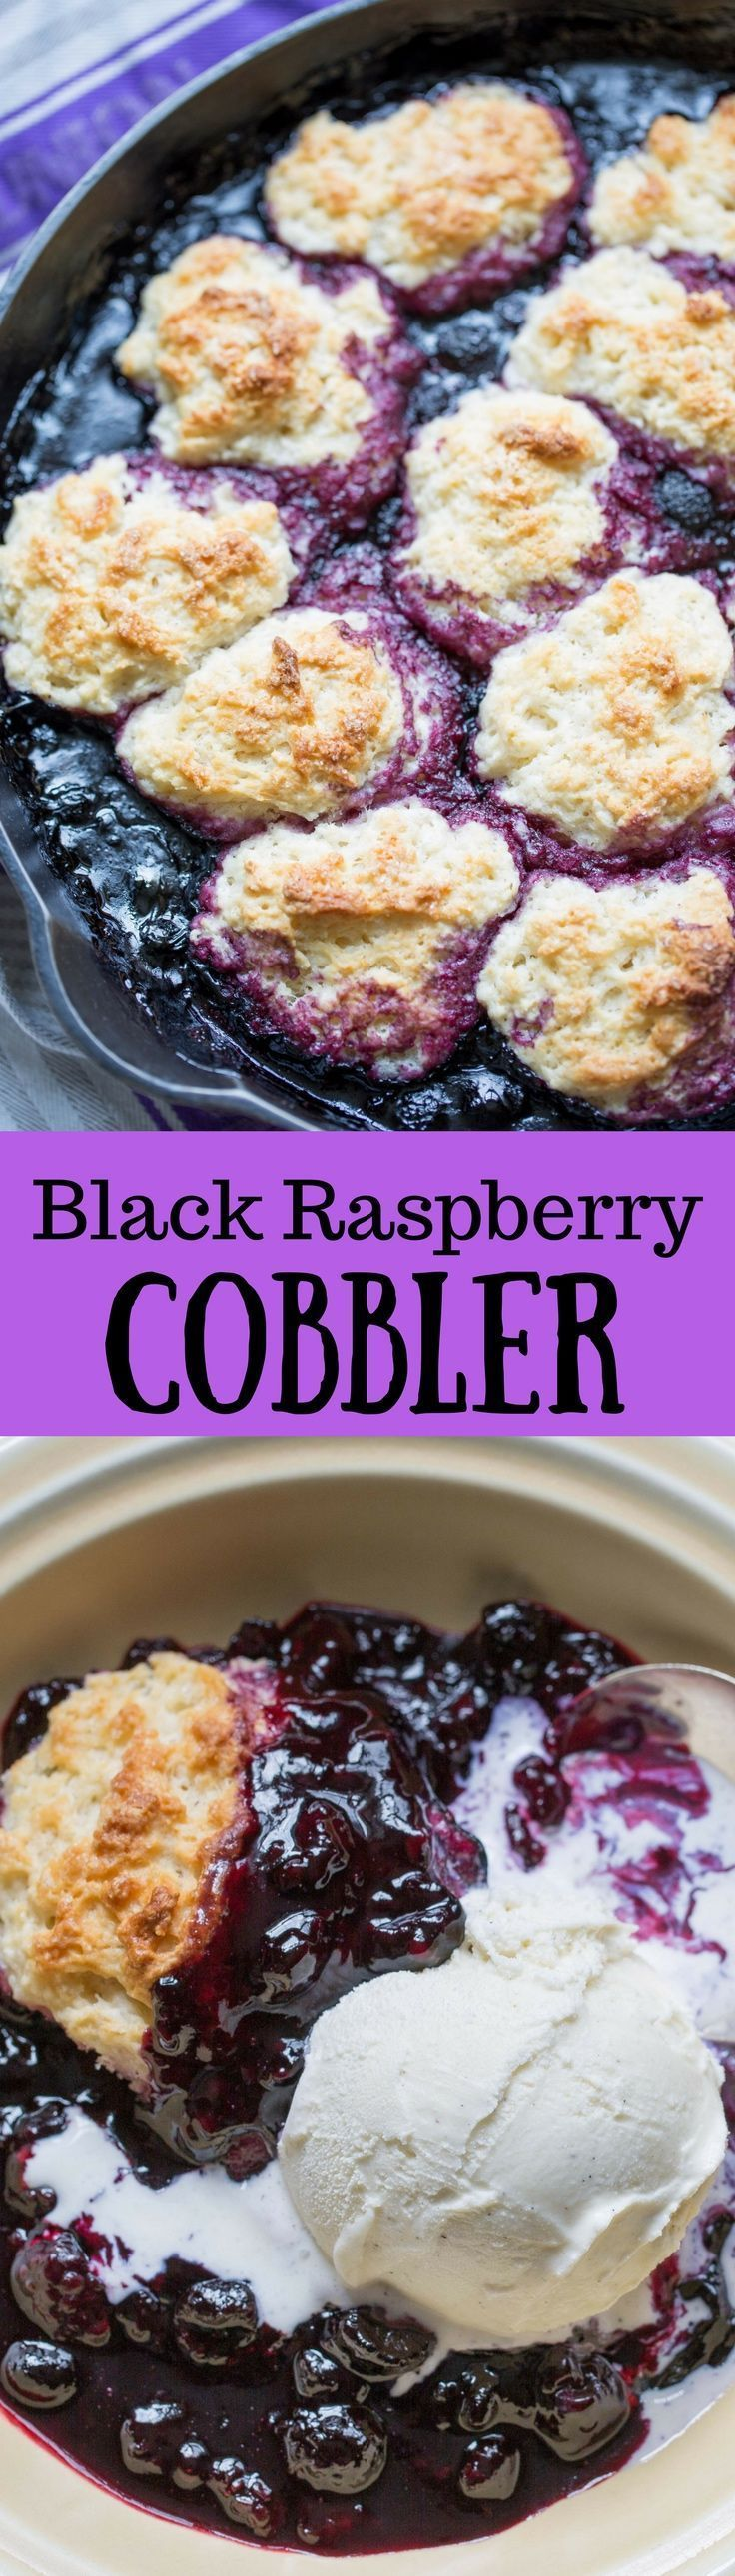 Black Raspberry Cobbler ~ A classic dessert cobbled together in a flash - substitute blackberries or blueberries as desired.  Make the most of your summer berries!  www.savingdessert...